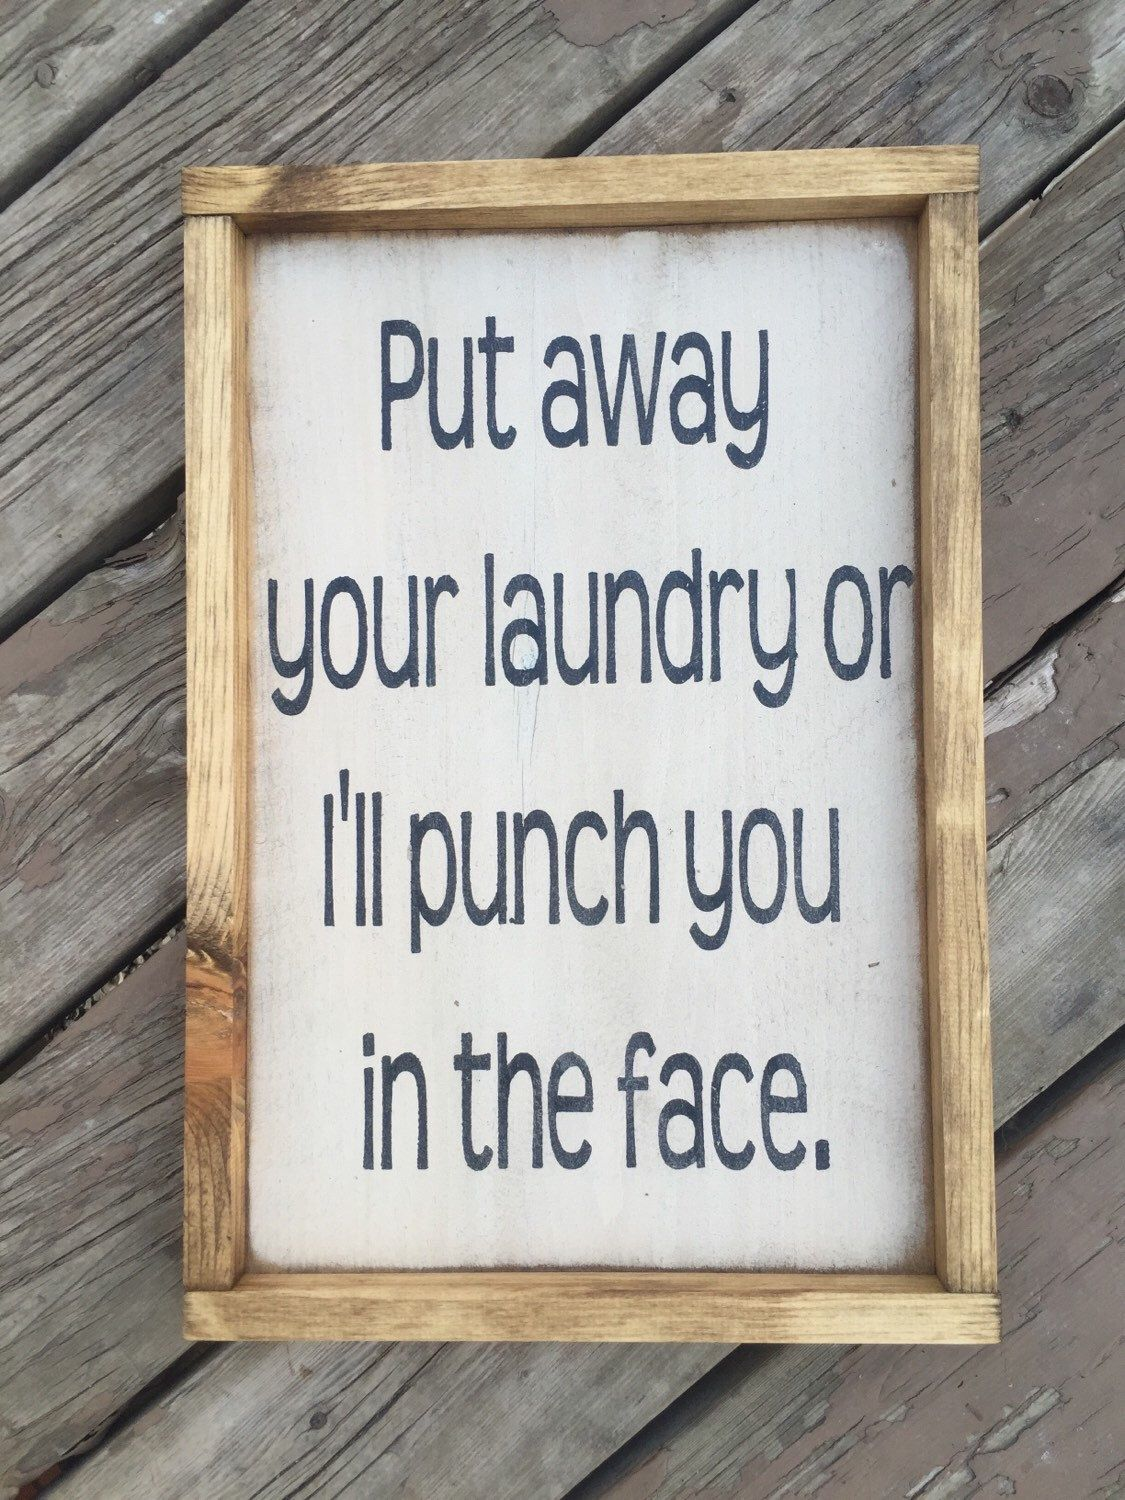 Funny Laundry Signs Rustic Framed Funny Laundry Signprim Pickins Shop Etsy  For